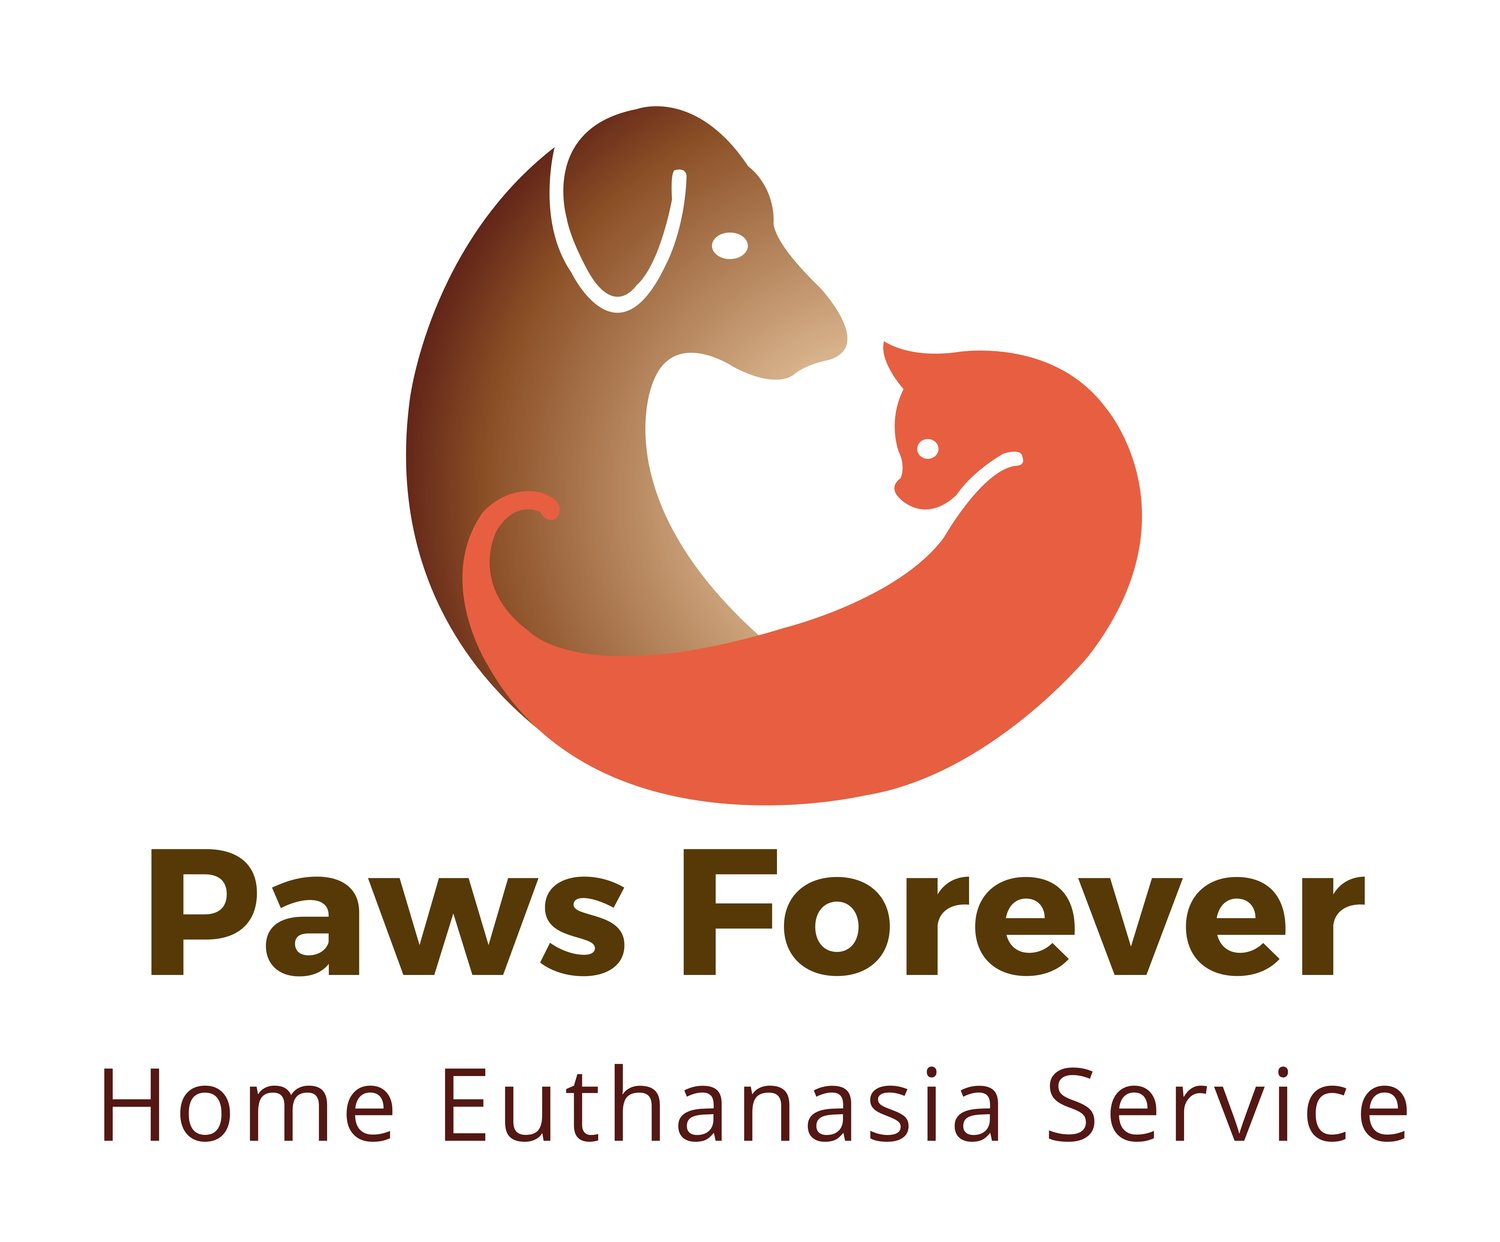 Paws Forever